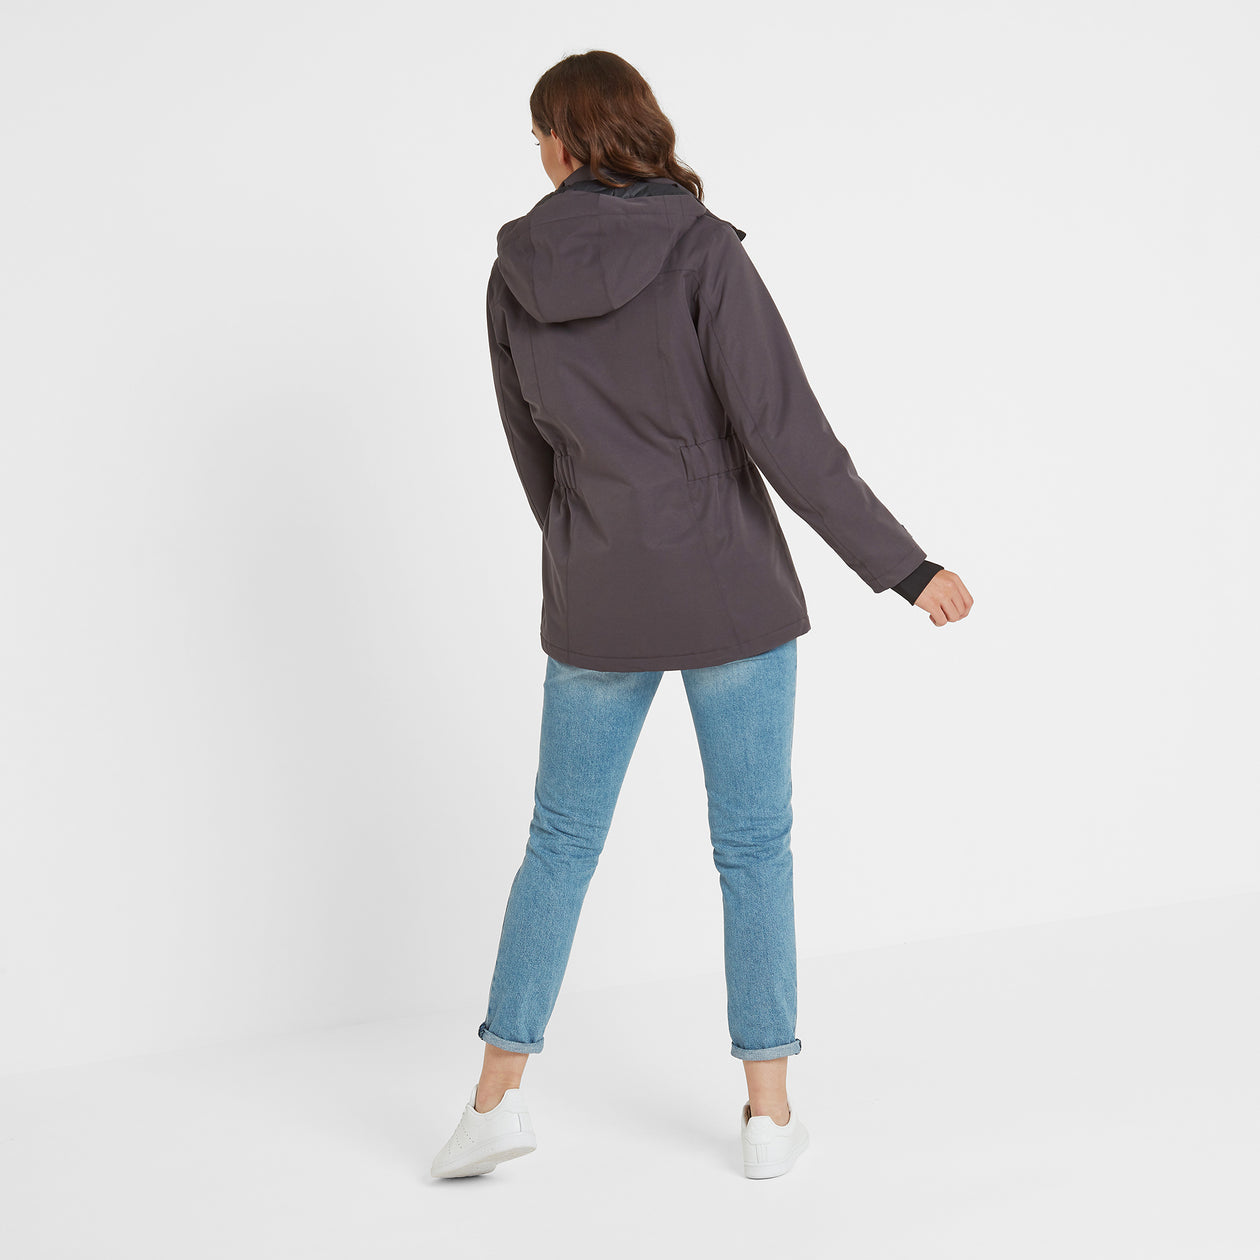 Cawood Womens Winter Jacket - Coal Grey image 4